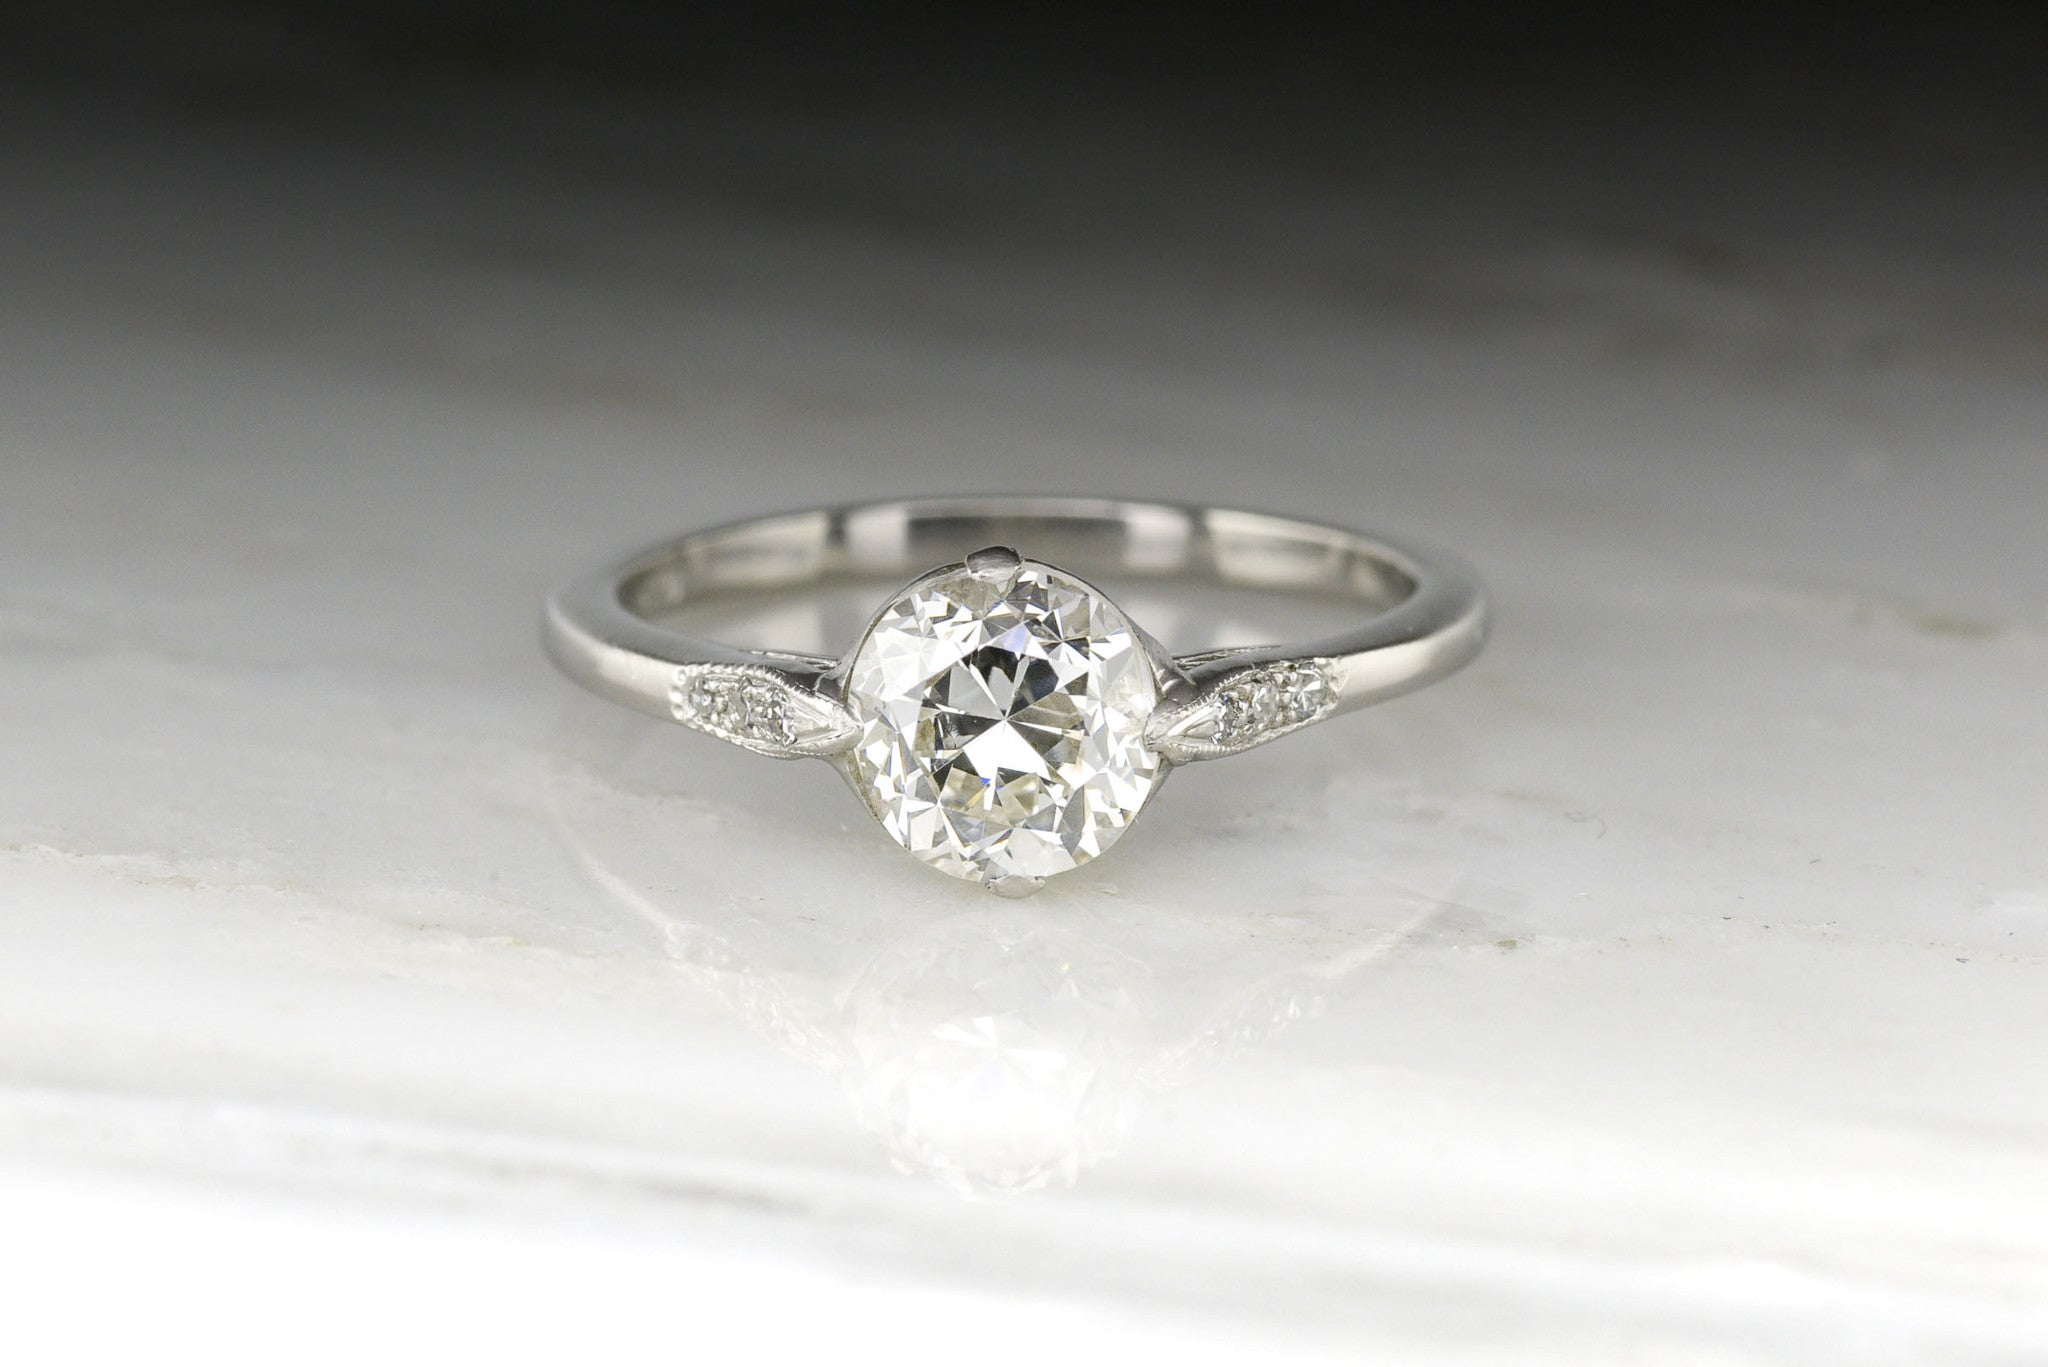 engagement gold look white diamond wg in jewelry nl edwardian halo ring with princess vintage cut black style rings